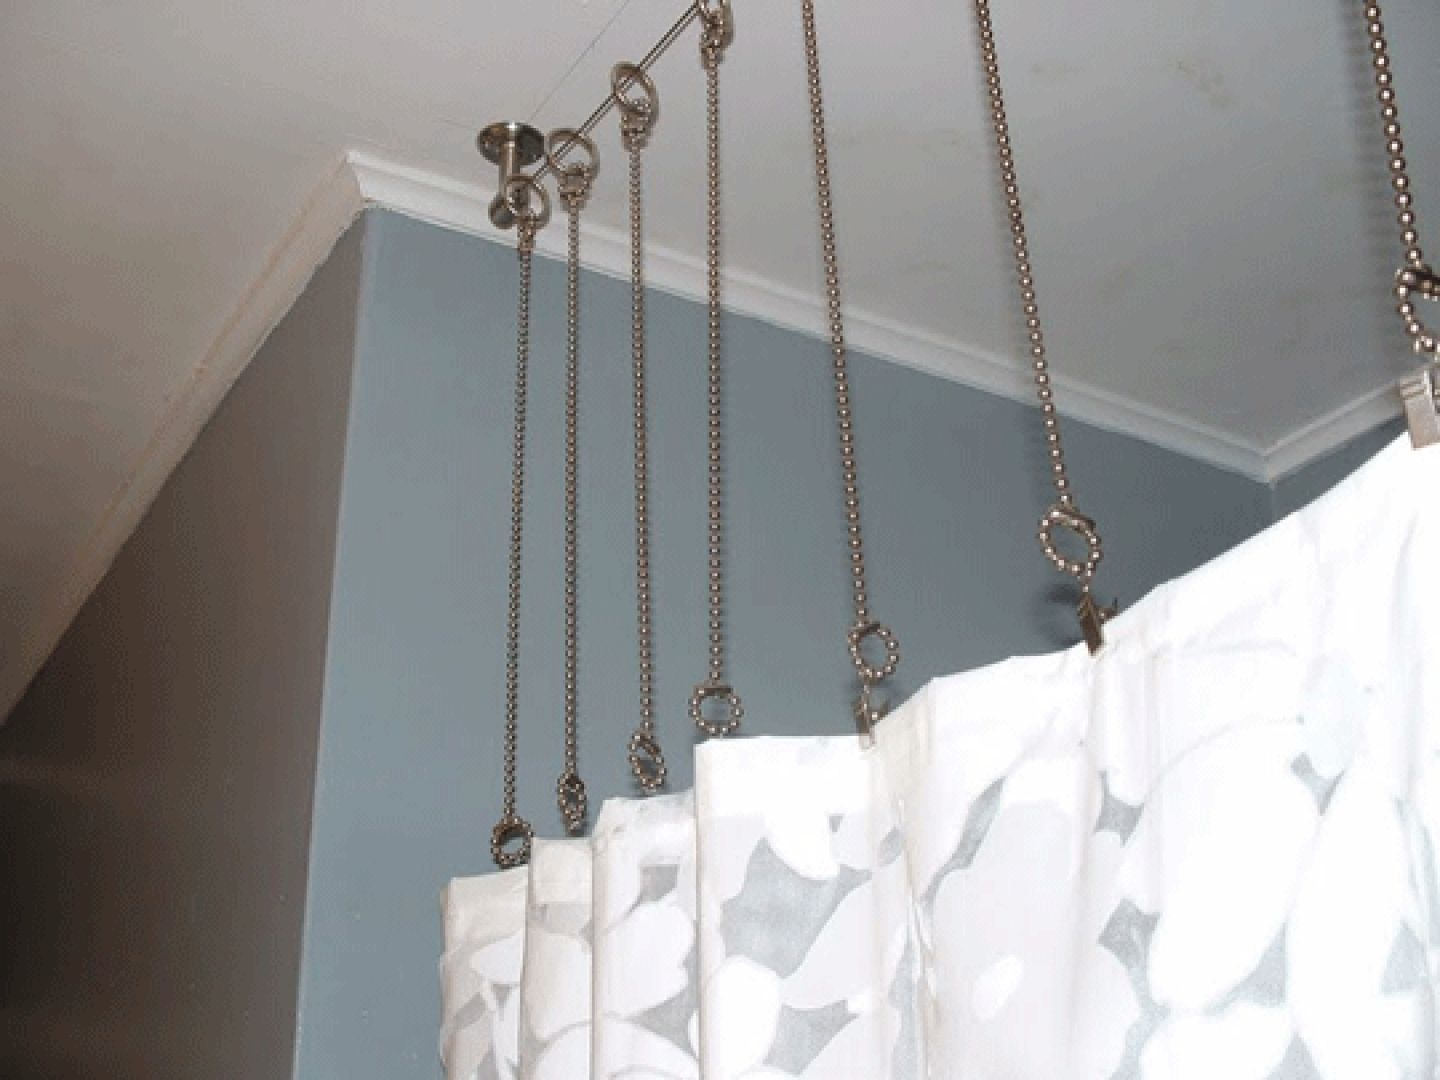 Shower Curtain Hanging Chains Clawfoot Tub Shower Curtain Diy Shower Curtain Unique Shower Curtain